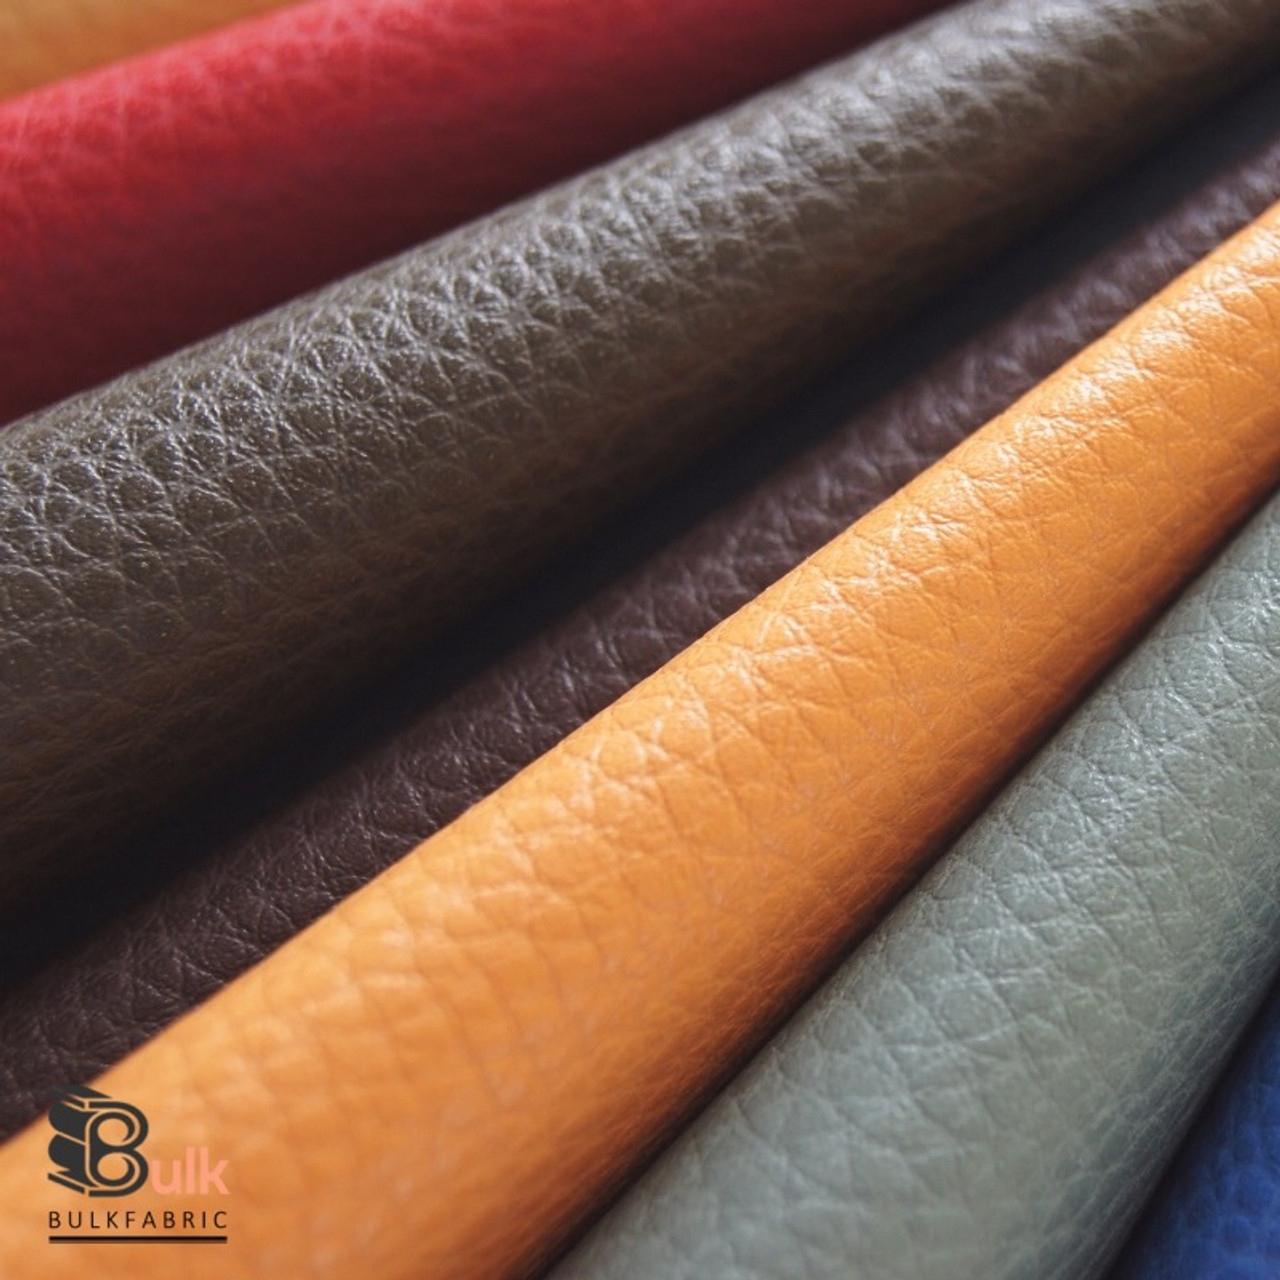 Wholesale 25 Yards Roll Pebbled Faux Leather Fabric Wholesale Upholstery Textured Pebble Leather Bulk